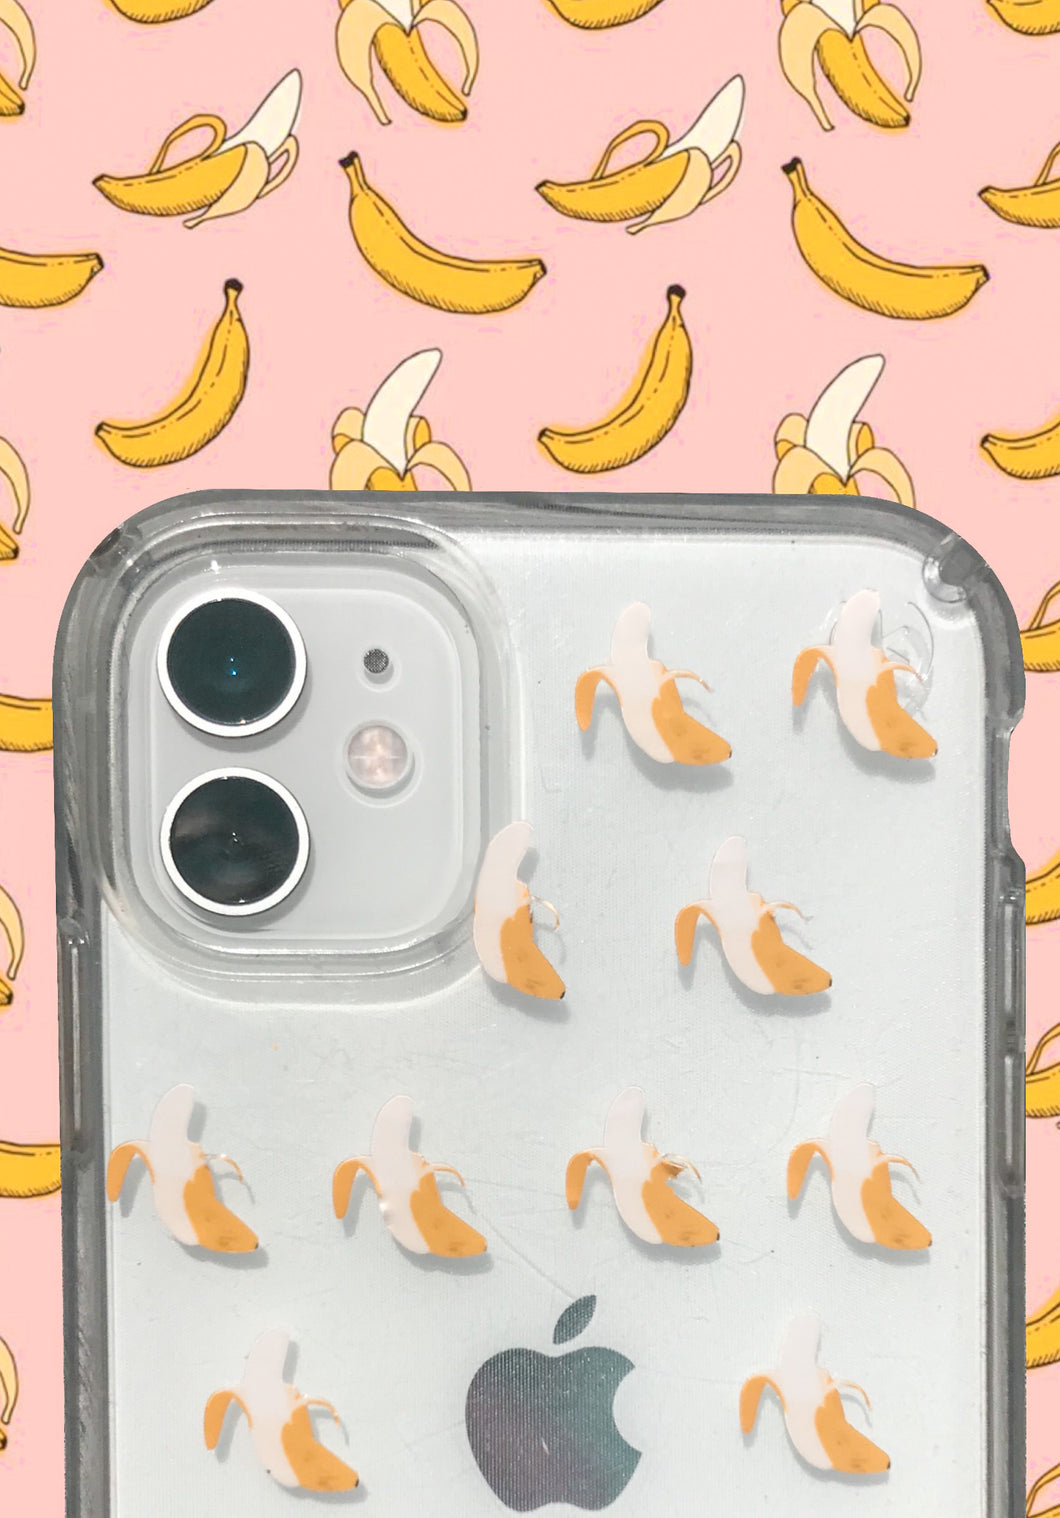 Mini Banana Stickers